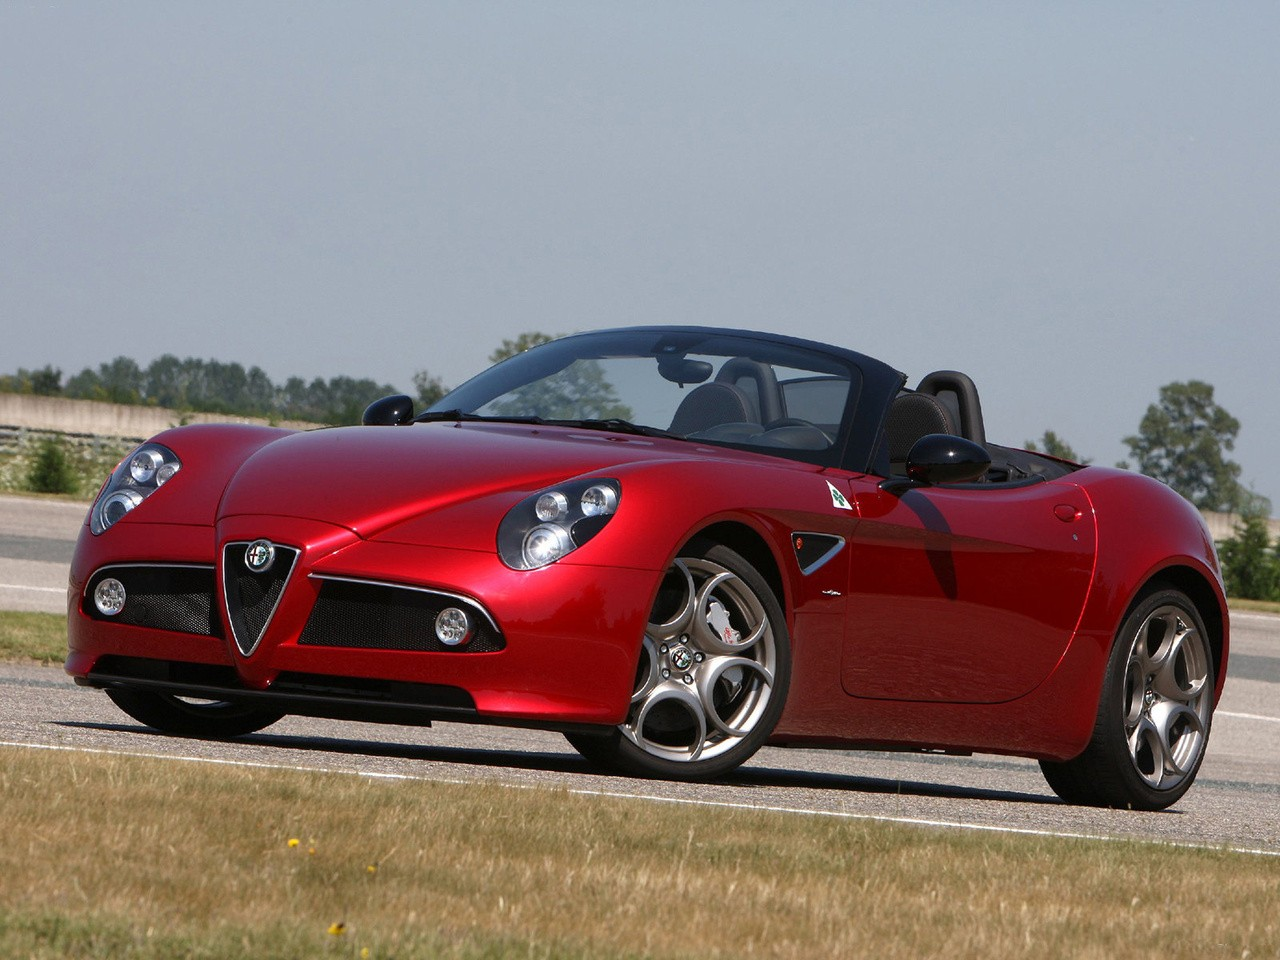 Alfa romeo cars made in italy